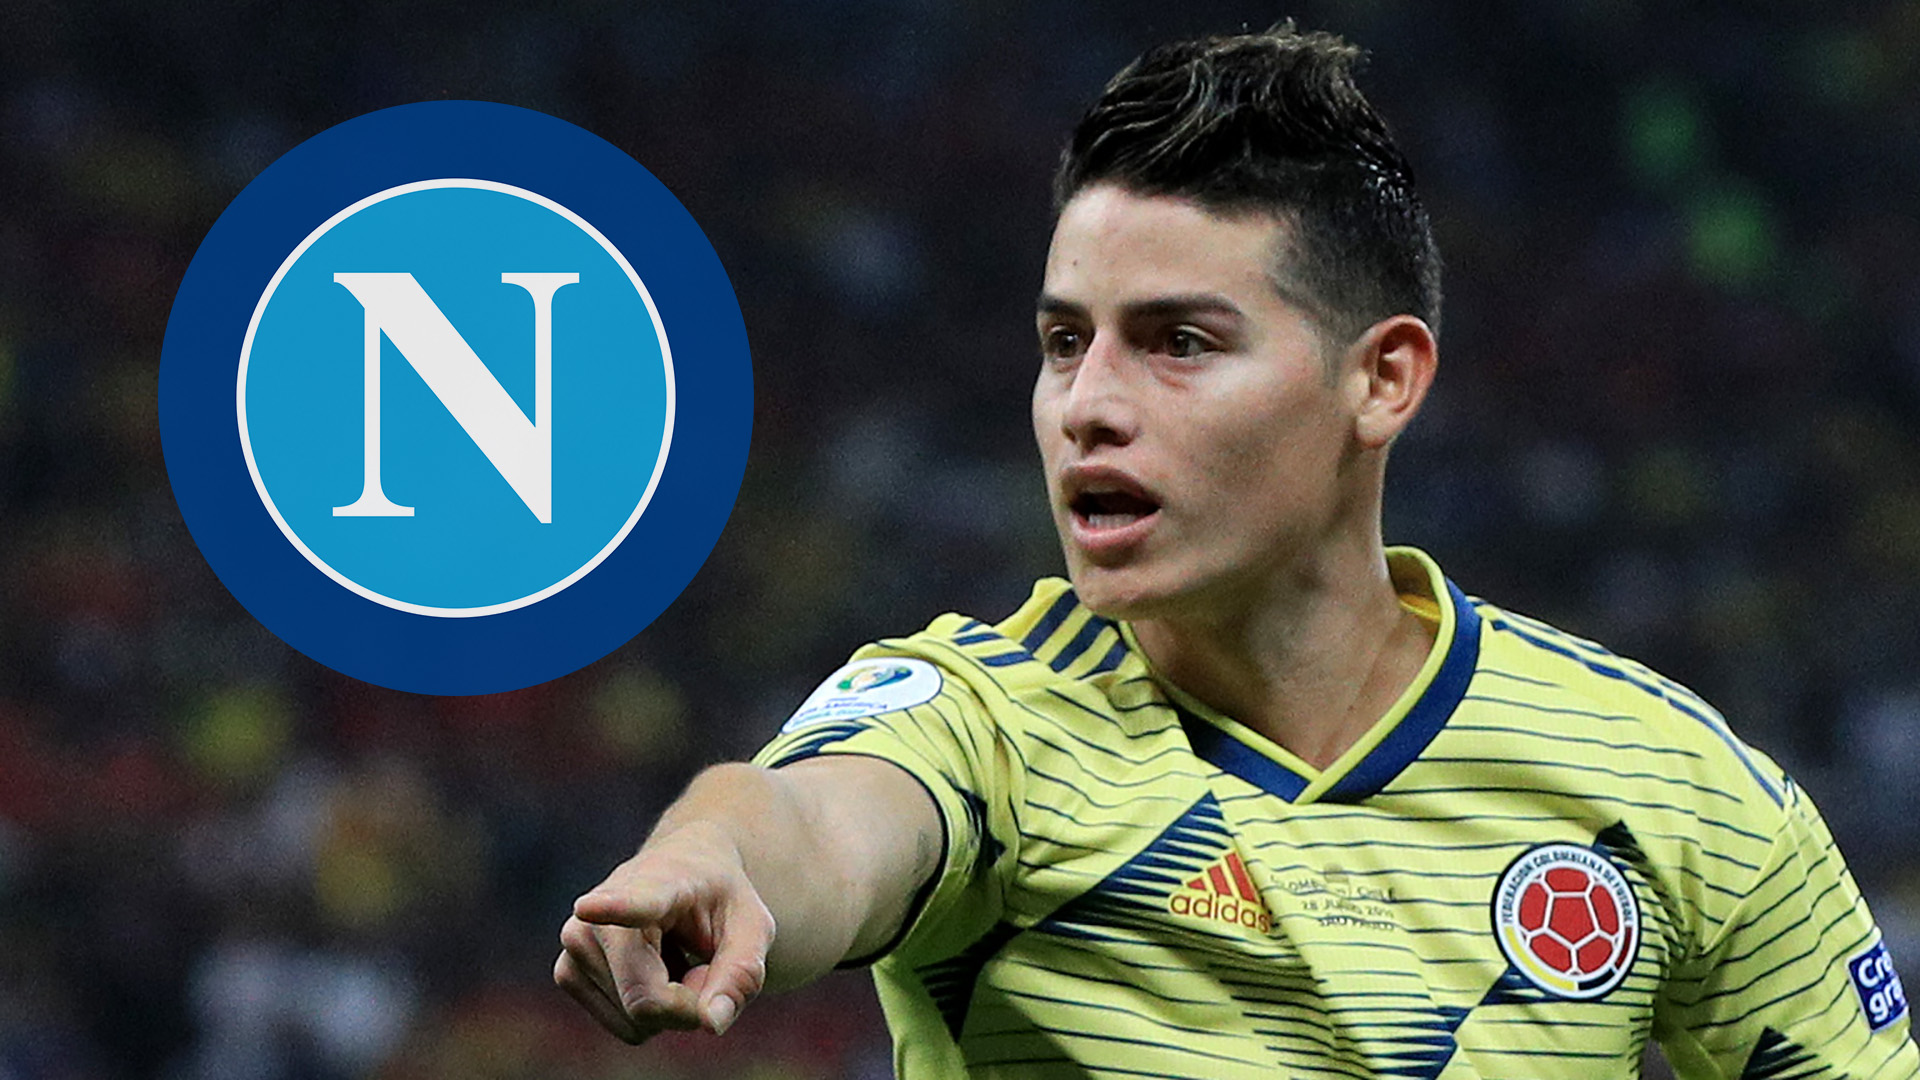 Mercato - De Laurentiis pense que le Real Madrid et Naples doivent faire des sacrifices pour James